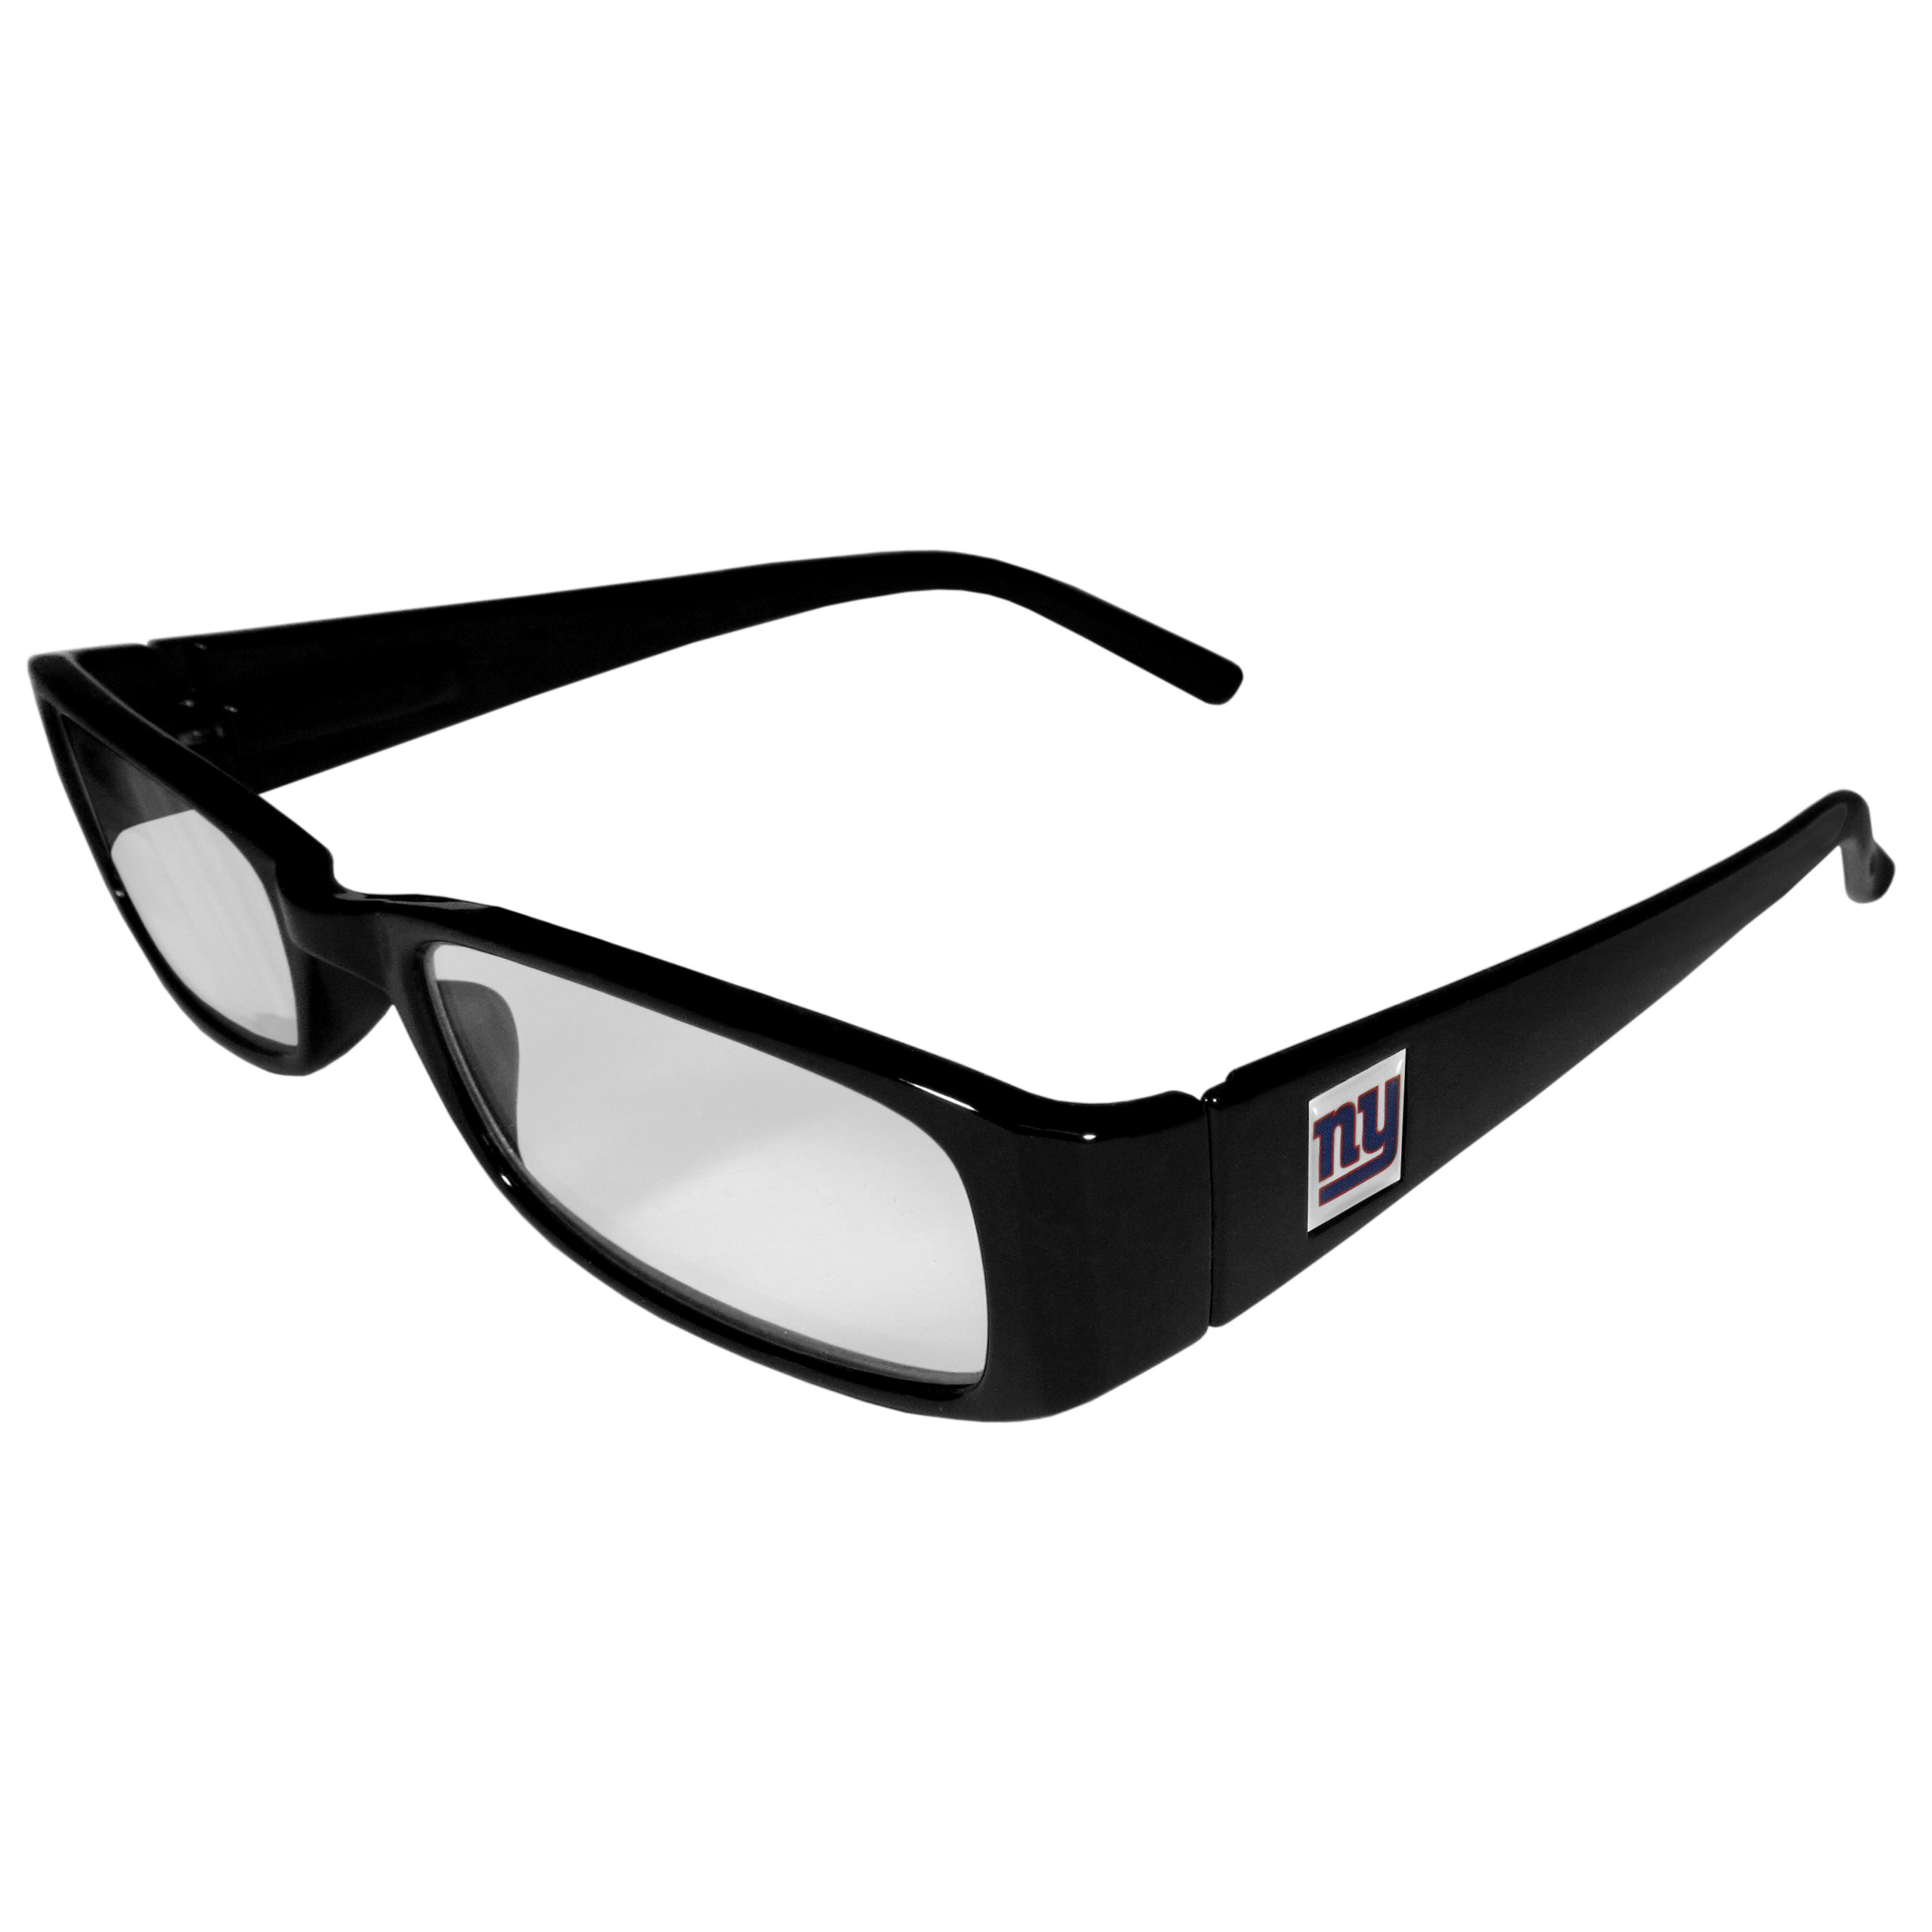 New York Giants Black Reading Glasses +1.50 - Our New York Giants reading glasses are 5.25 inches wide and feature the team logo on each arm. Magnification Power 1.50